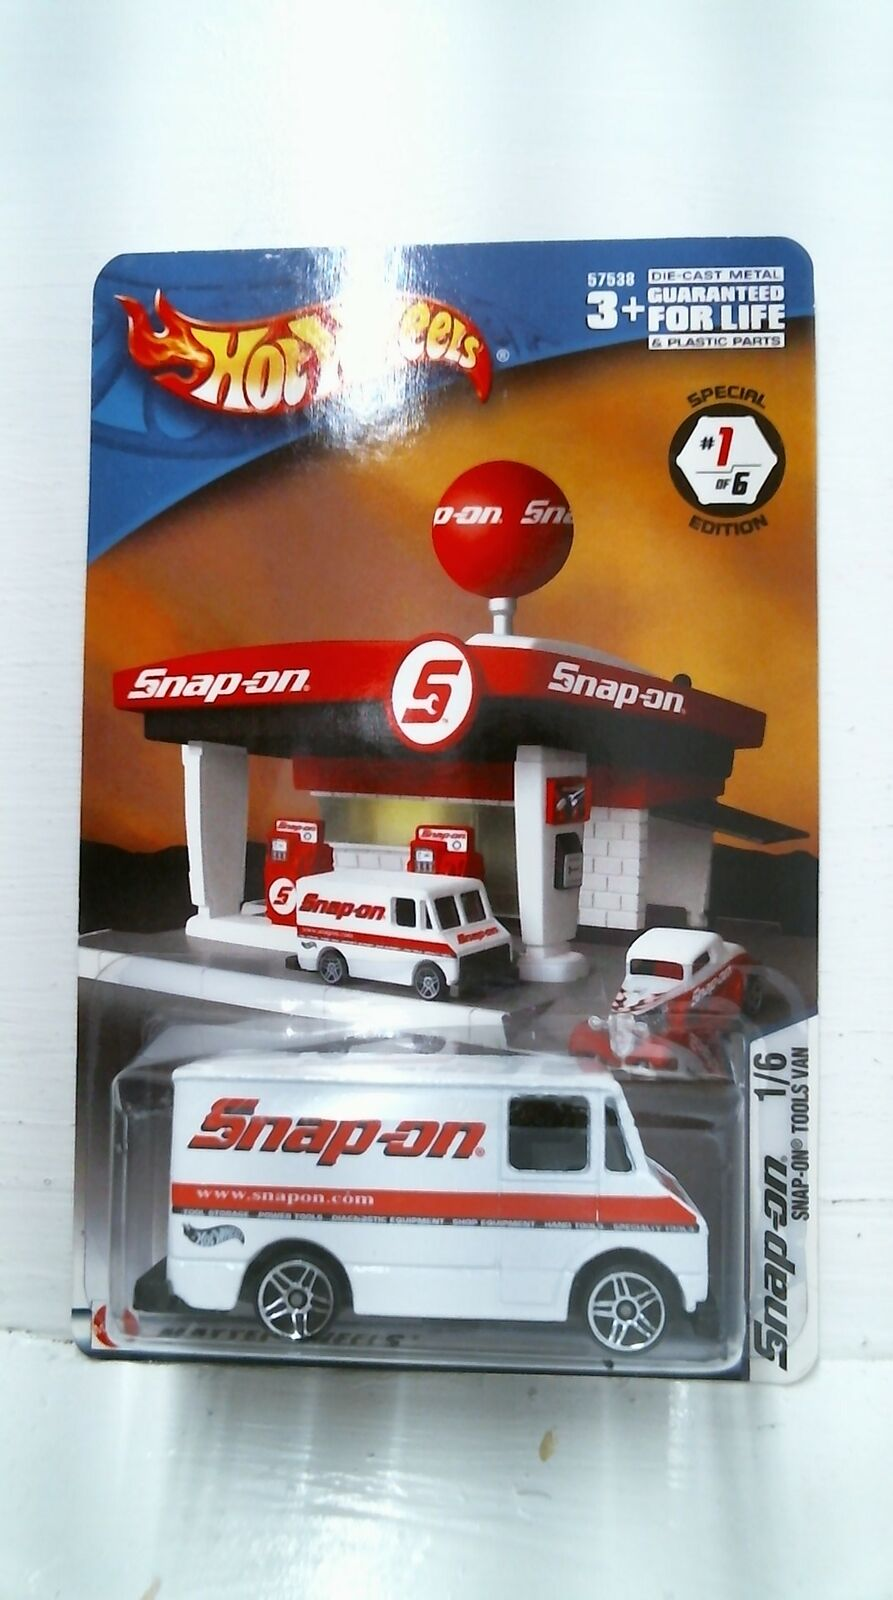 2003 HOTWHEELS Snap-on Tools Van Special Edition 1 6 - Blanc